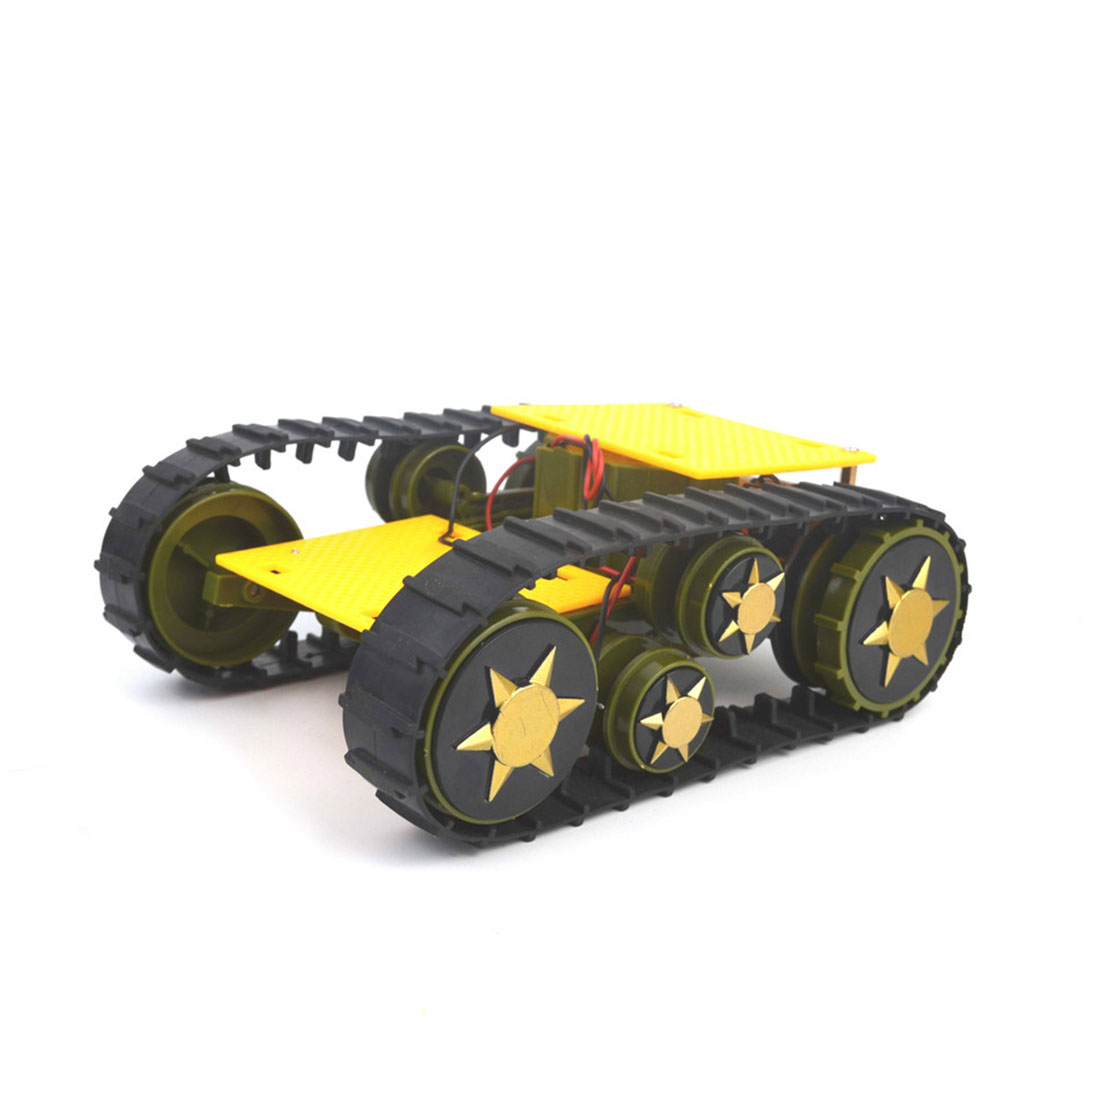 DIY Deformation Smart Tank Robot Crawler Caterpillar Vehicle Platform For Arduino SN1900 For Child Educational Toy Birthday Gift